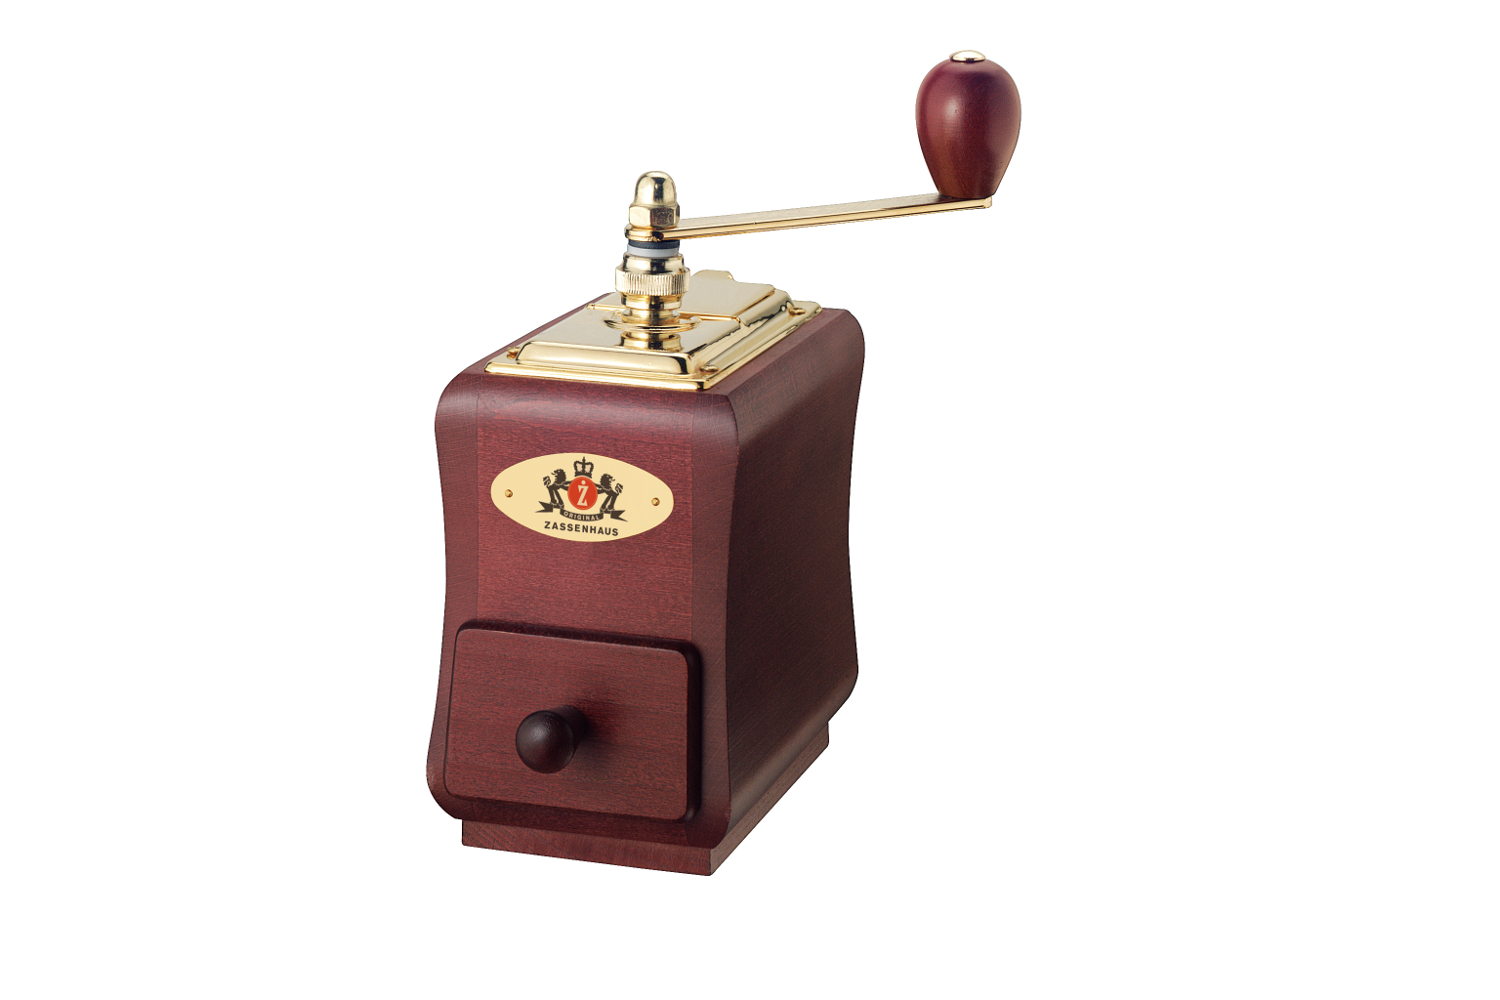 Zassenhaus Santiago Manual Coffee Mill - Mahogany Beech Wood